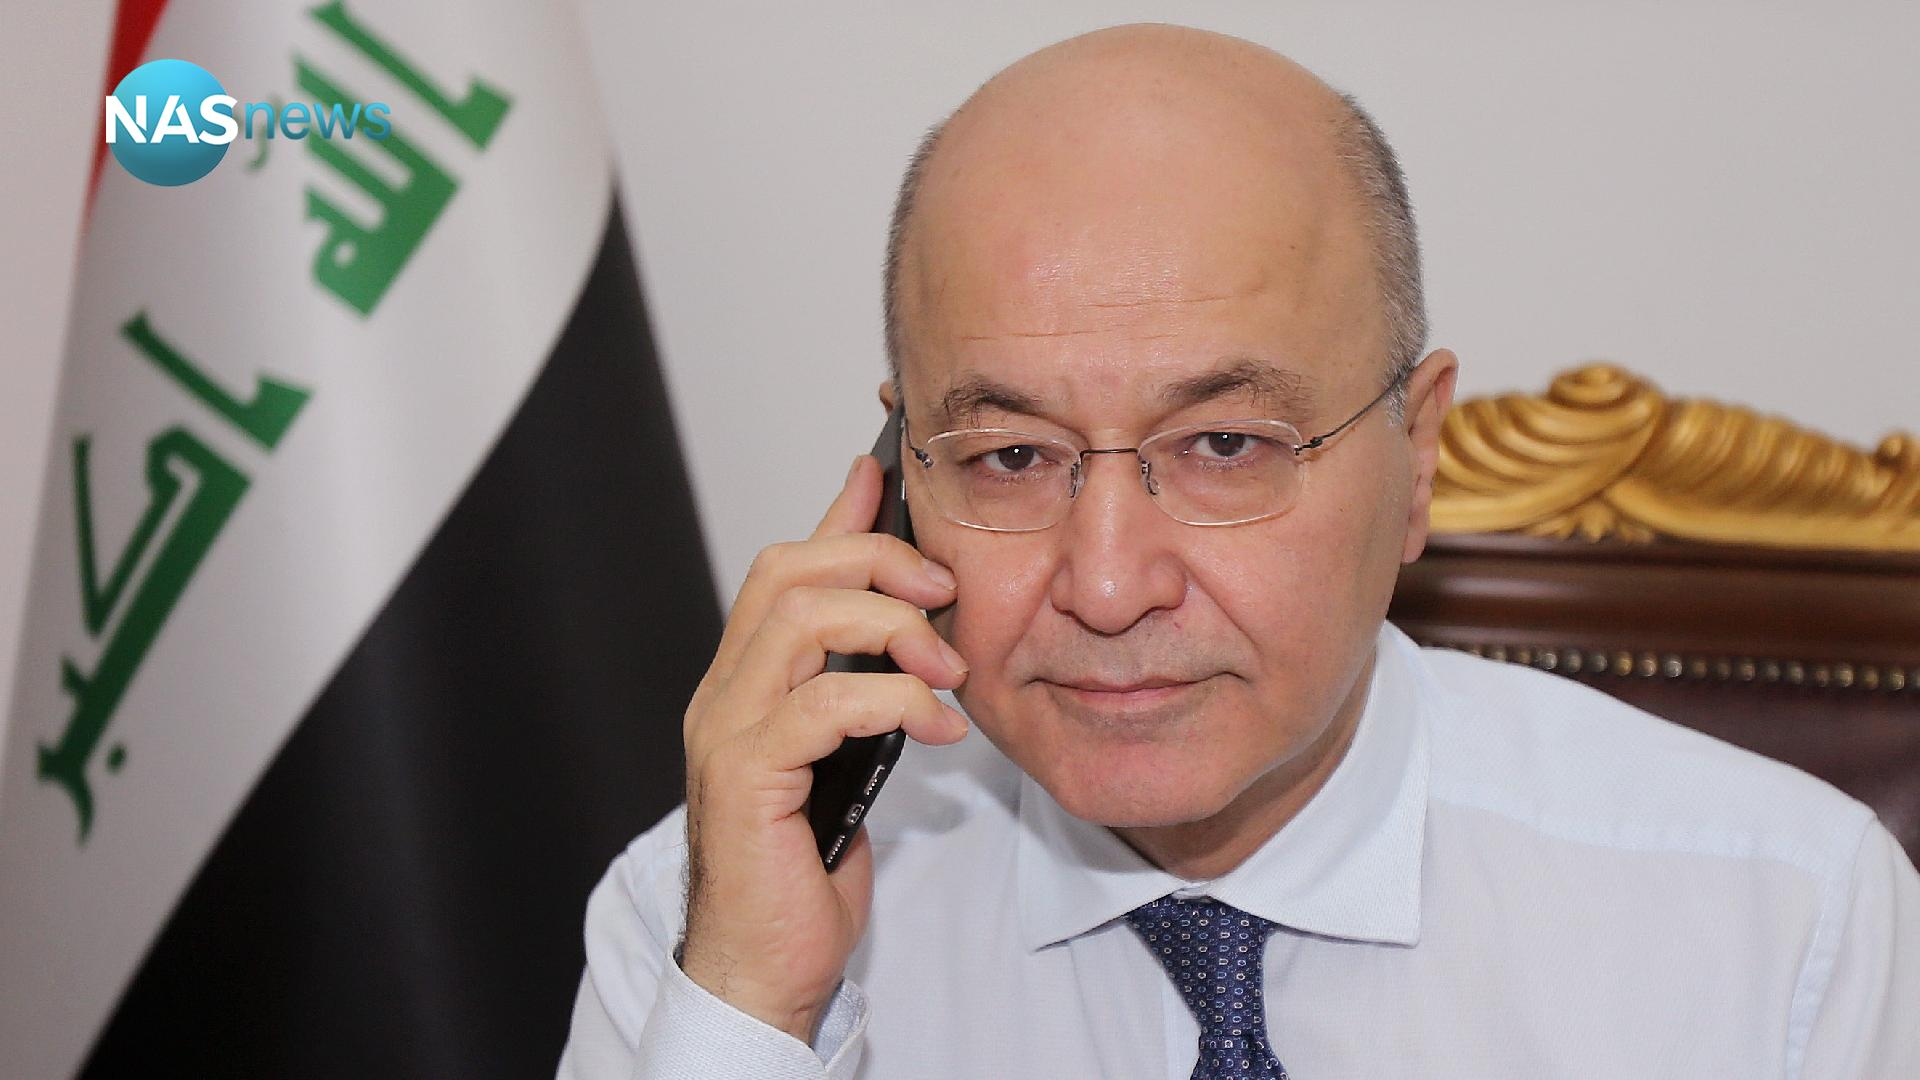 A phone call between the US Secretary of State and the President of the Republic Barham Salih